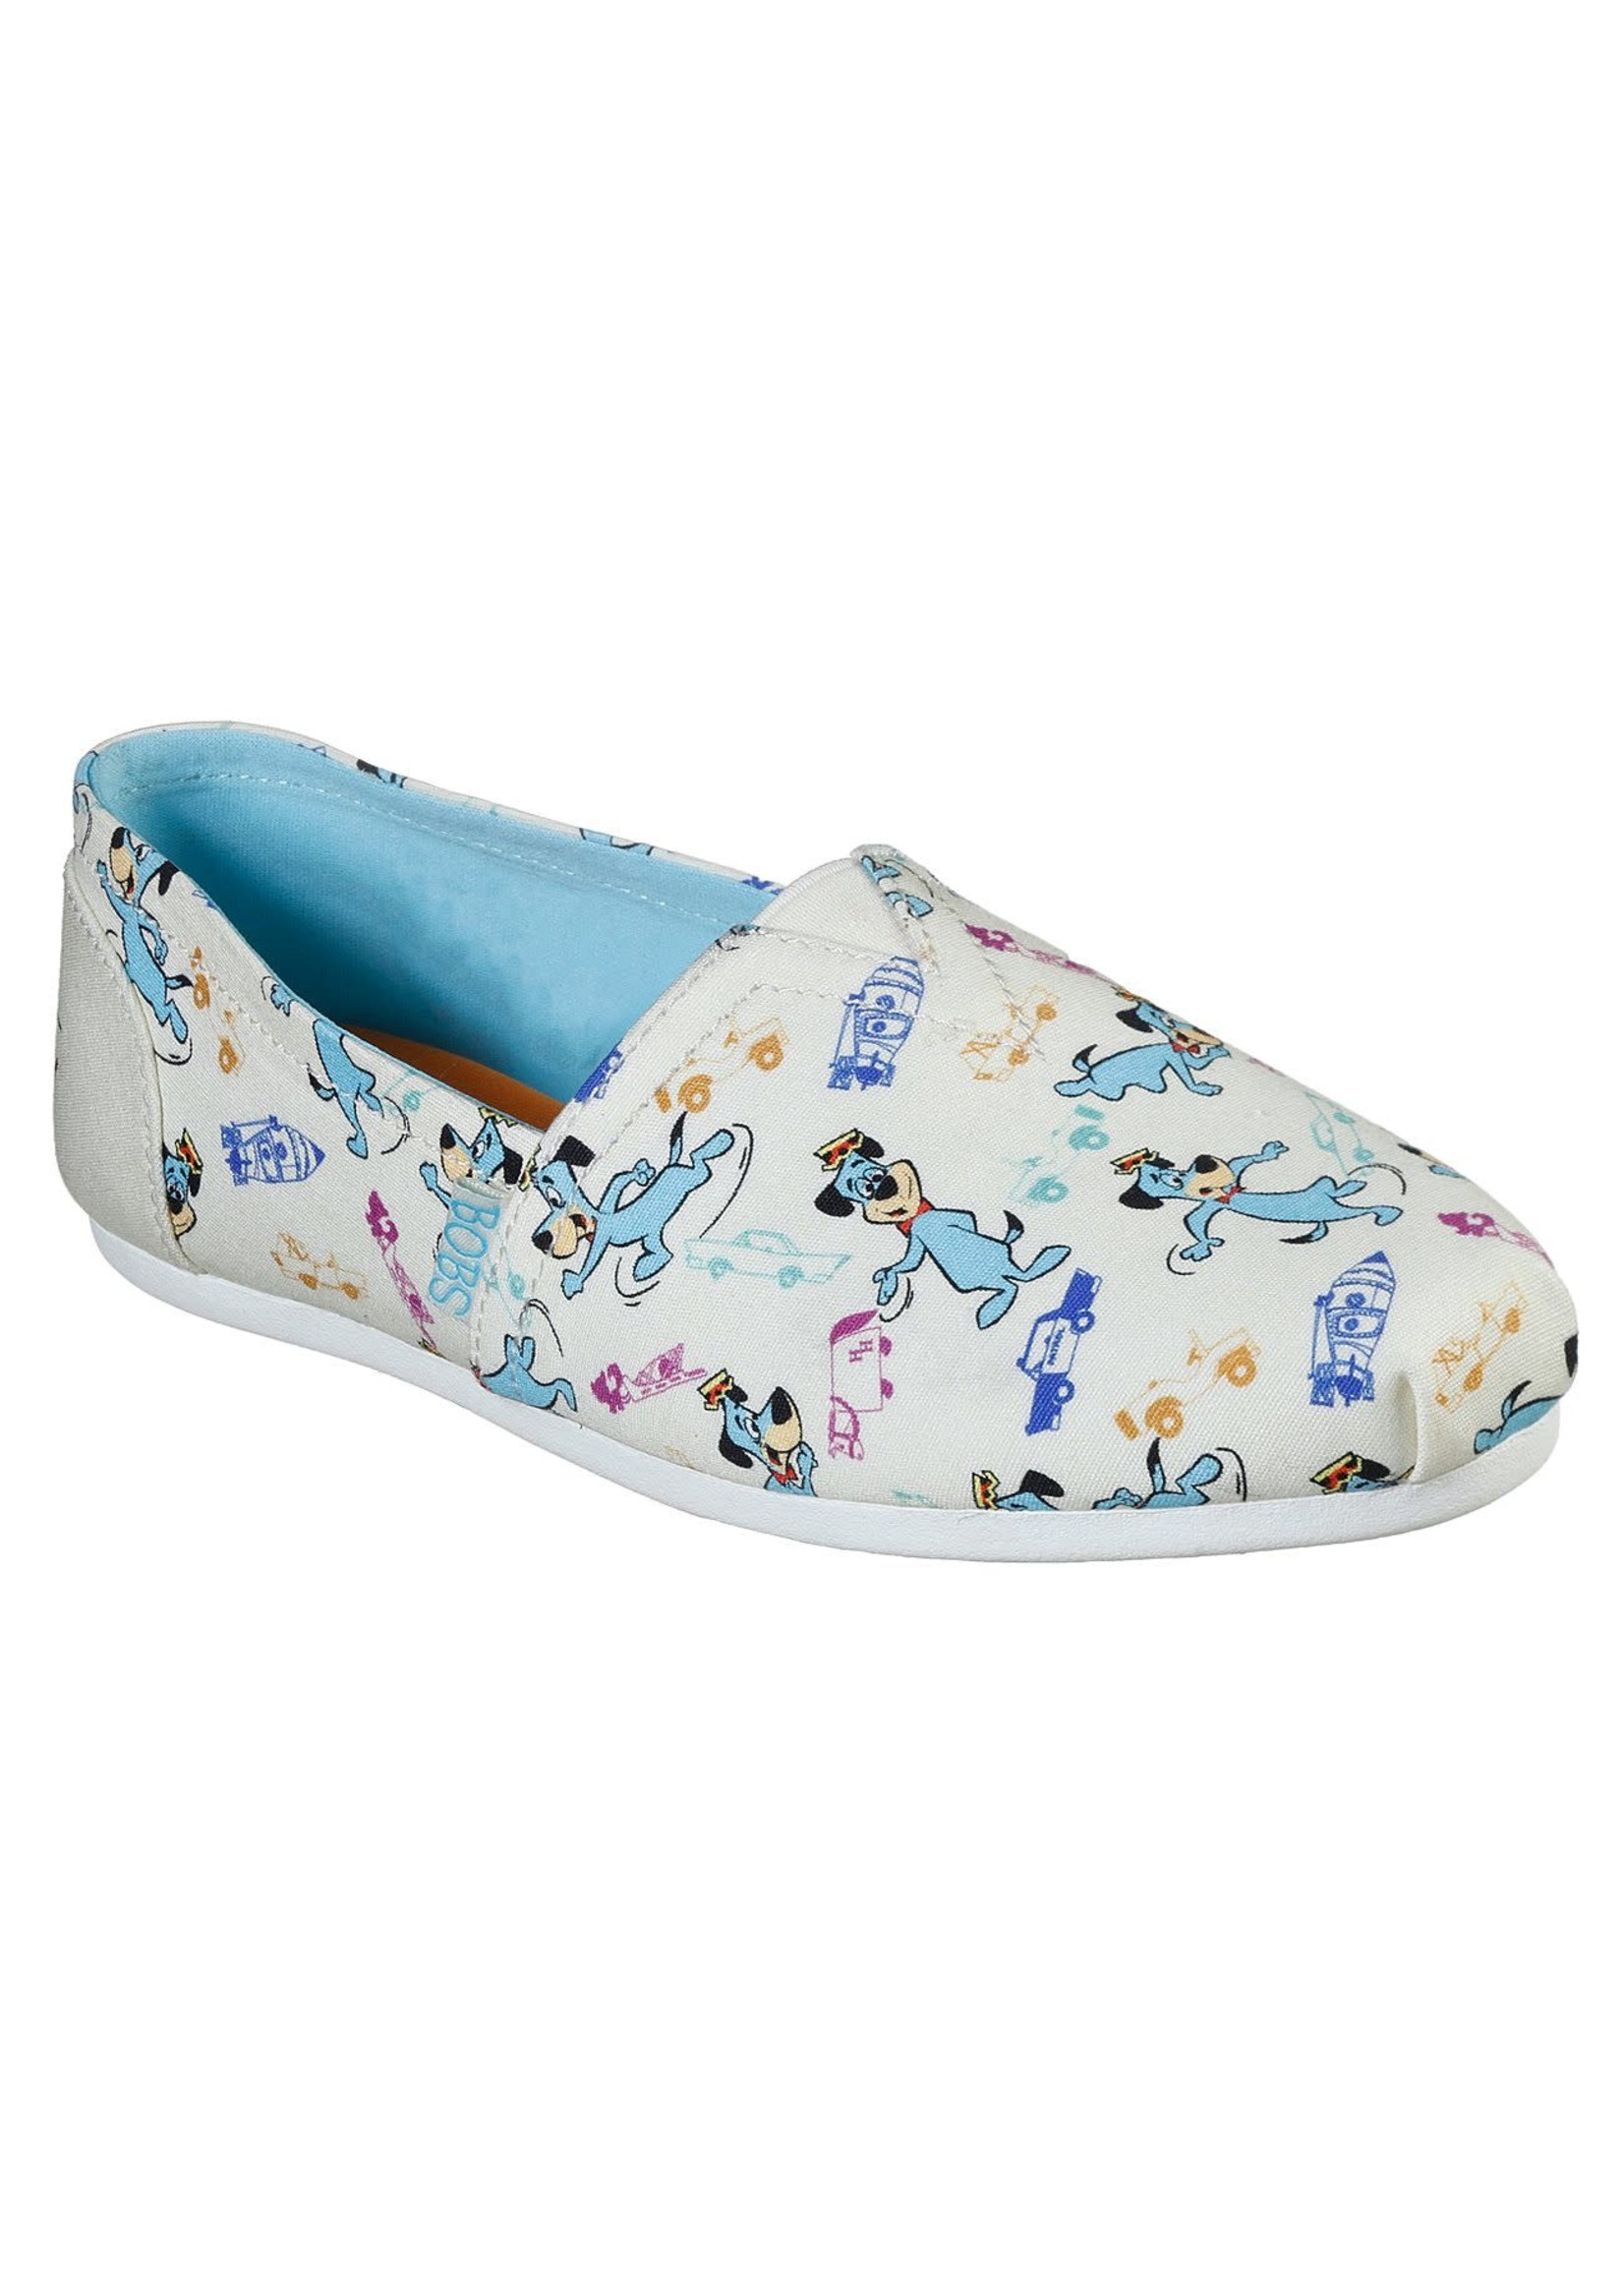 Skechers BOBS PLUSH - HOUND DOG 33198